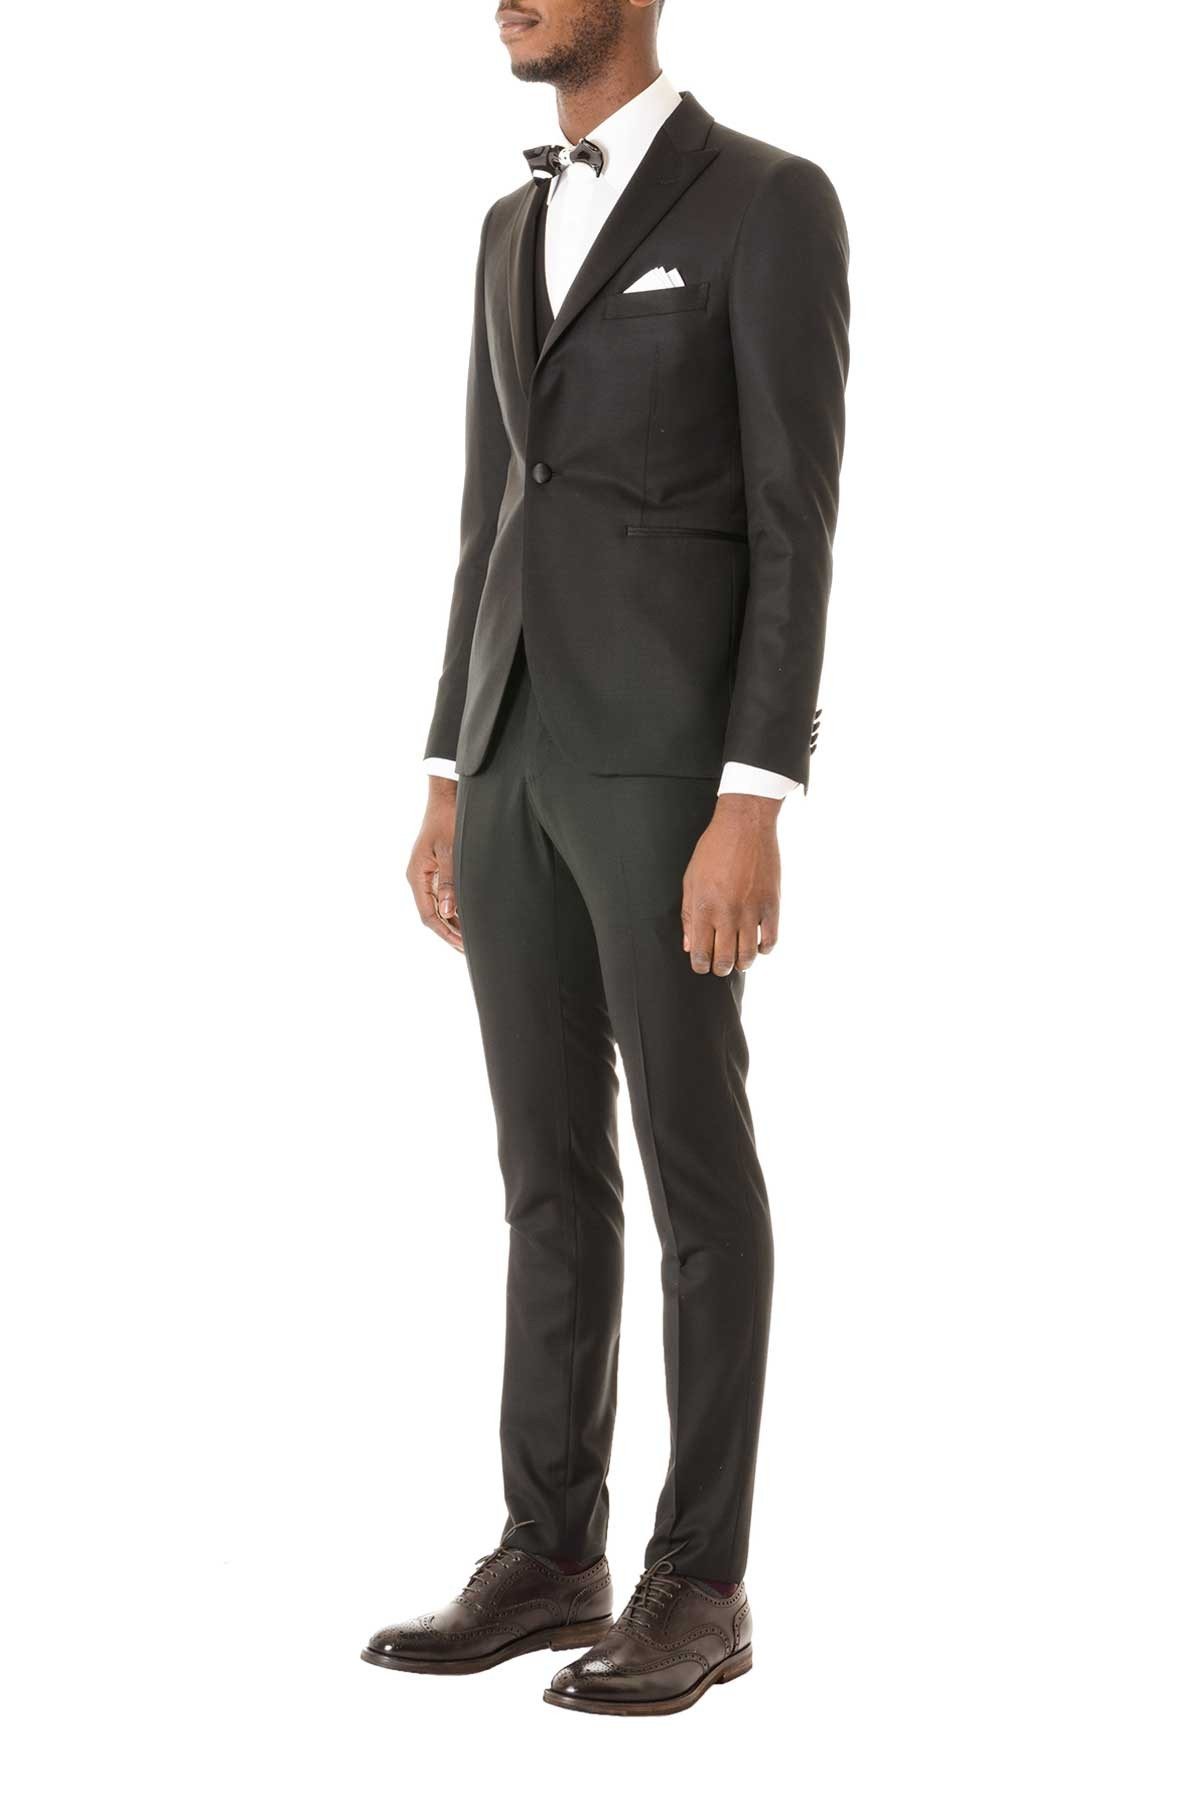 TAGLIATORE Black suit with vest for man Fall Winter